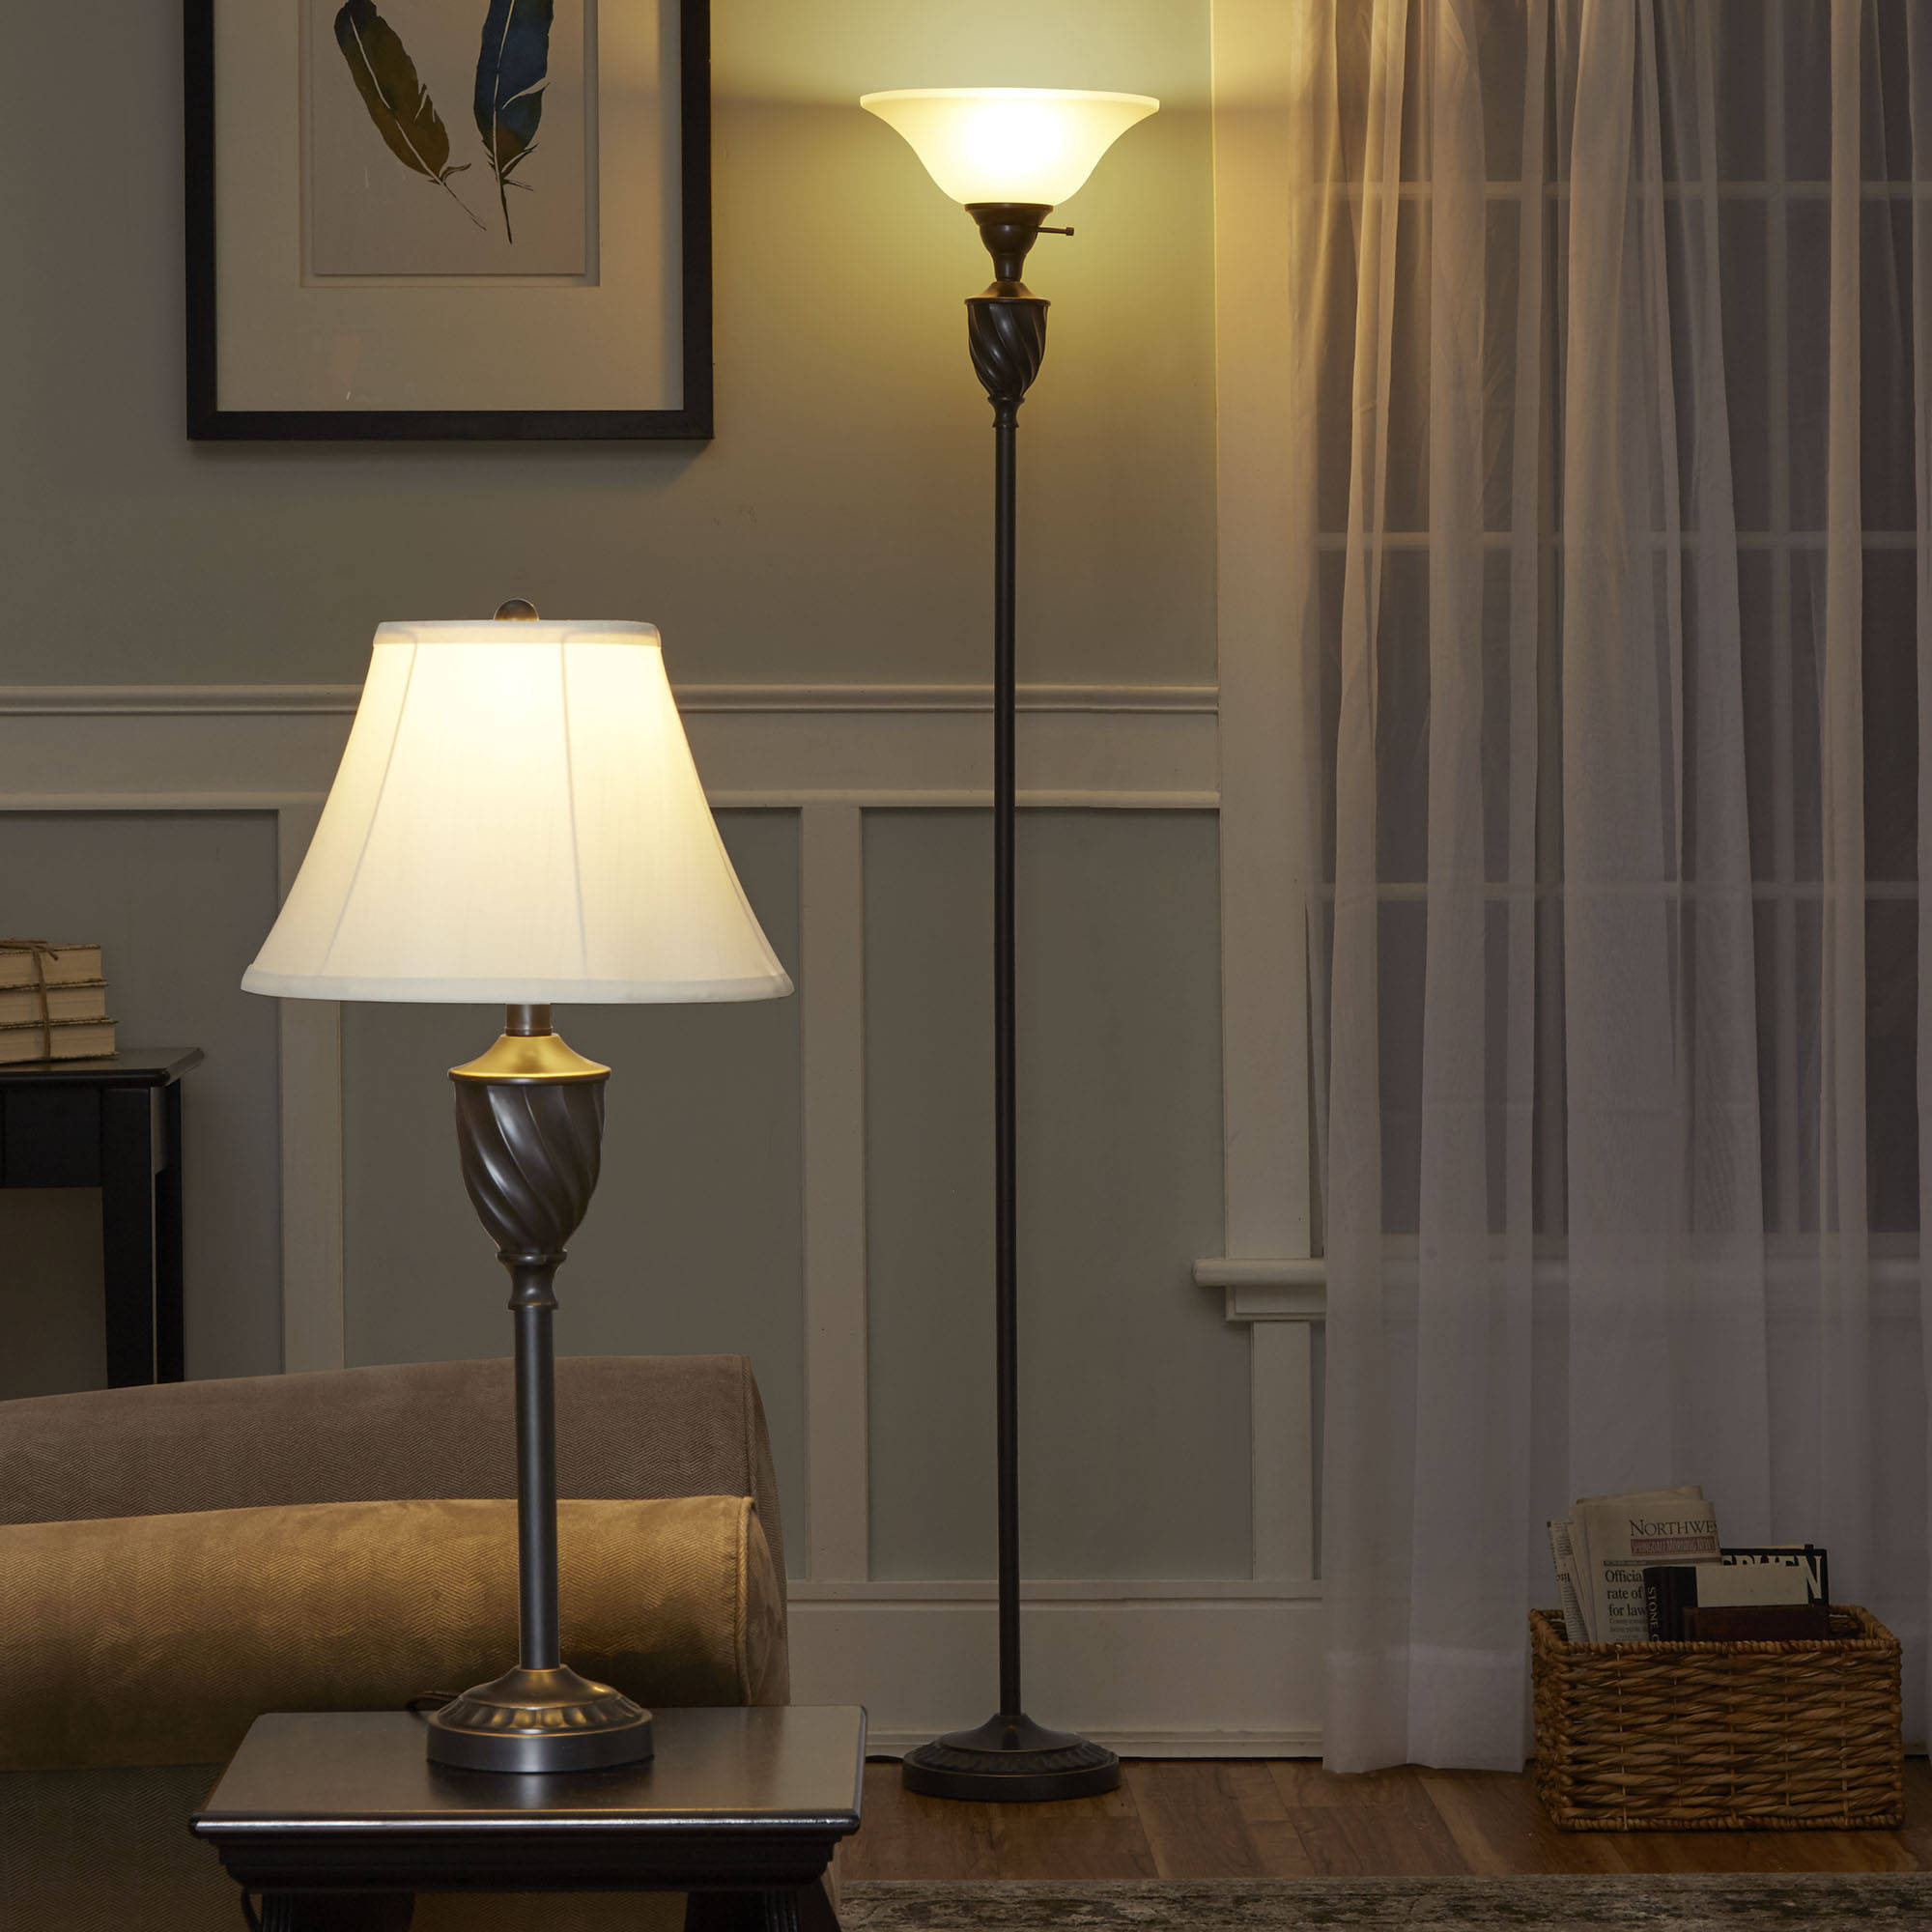 Mainstays Table and Floor Lamp Set with CFL Bulb, Oil-Rubbed ...